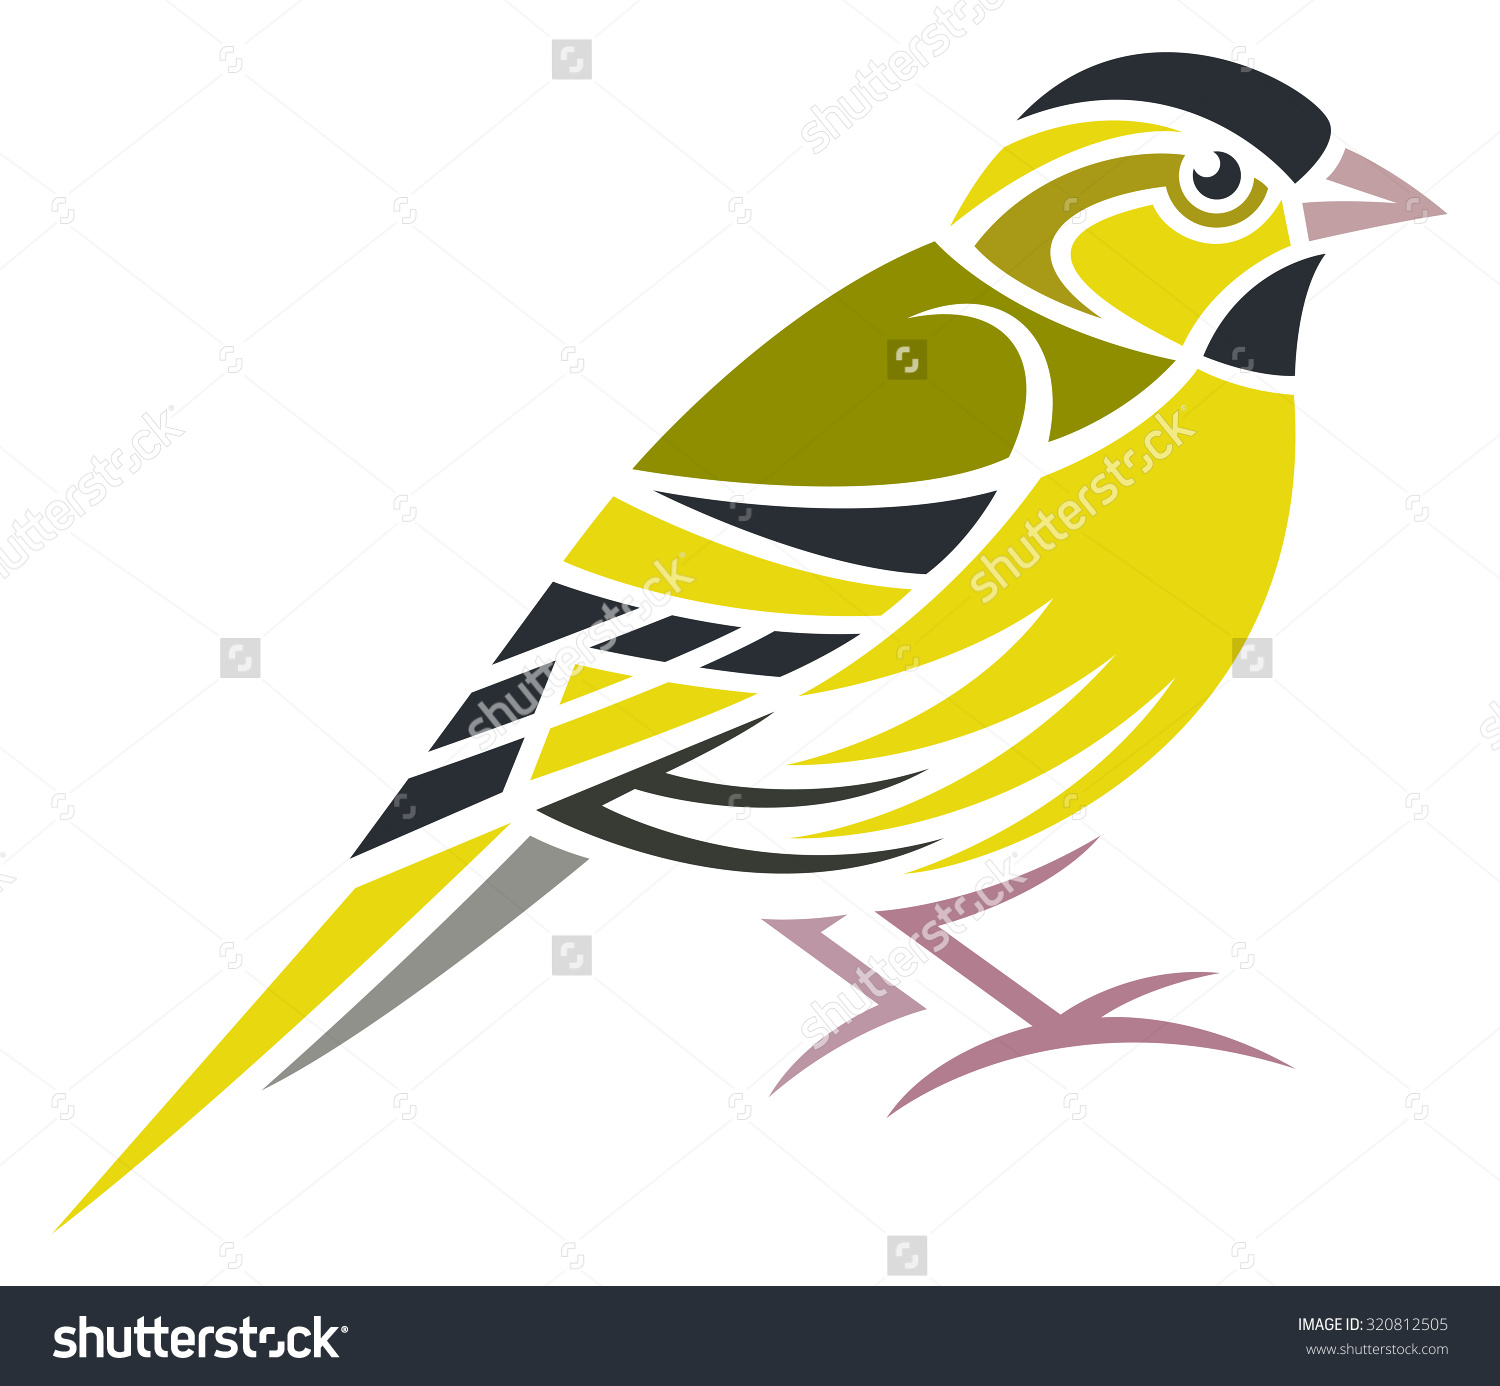 Eurasian Siskin clipart #3, Download drawings